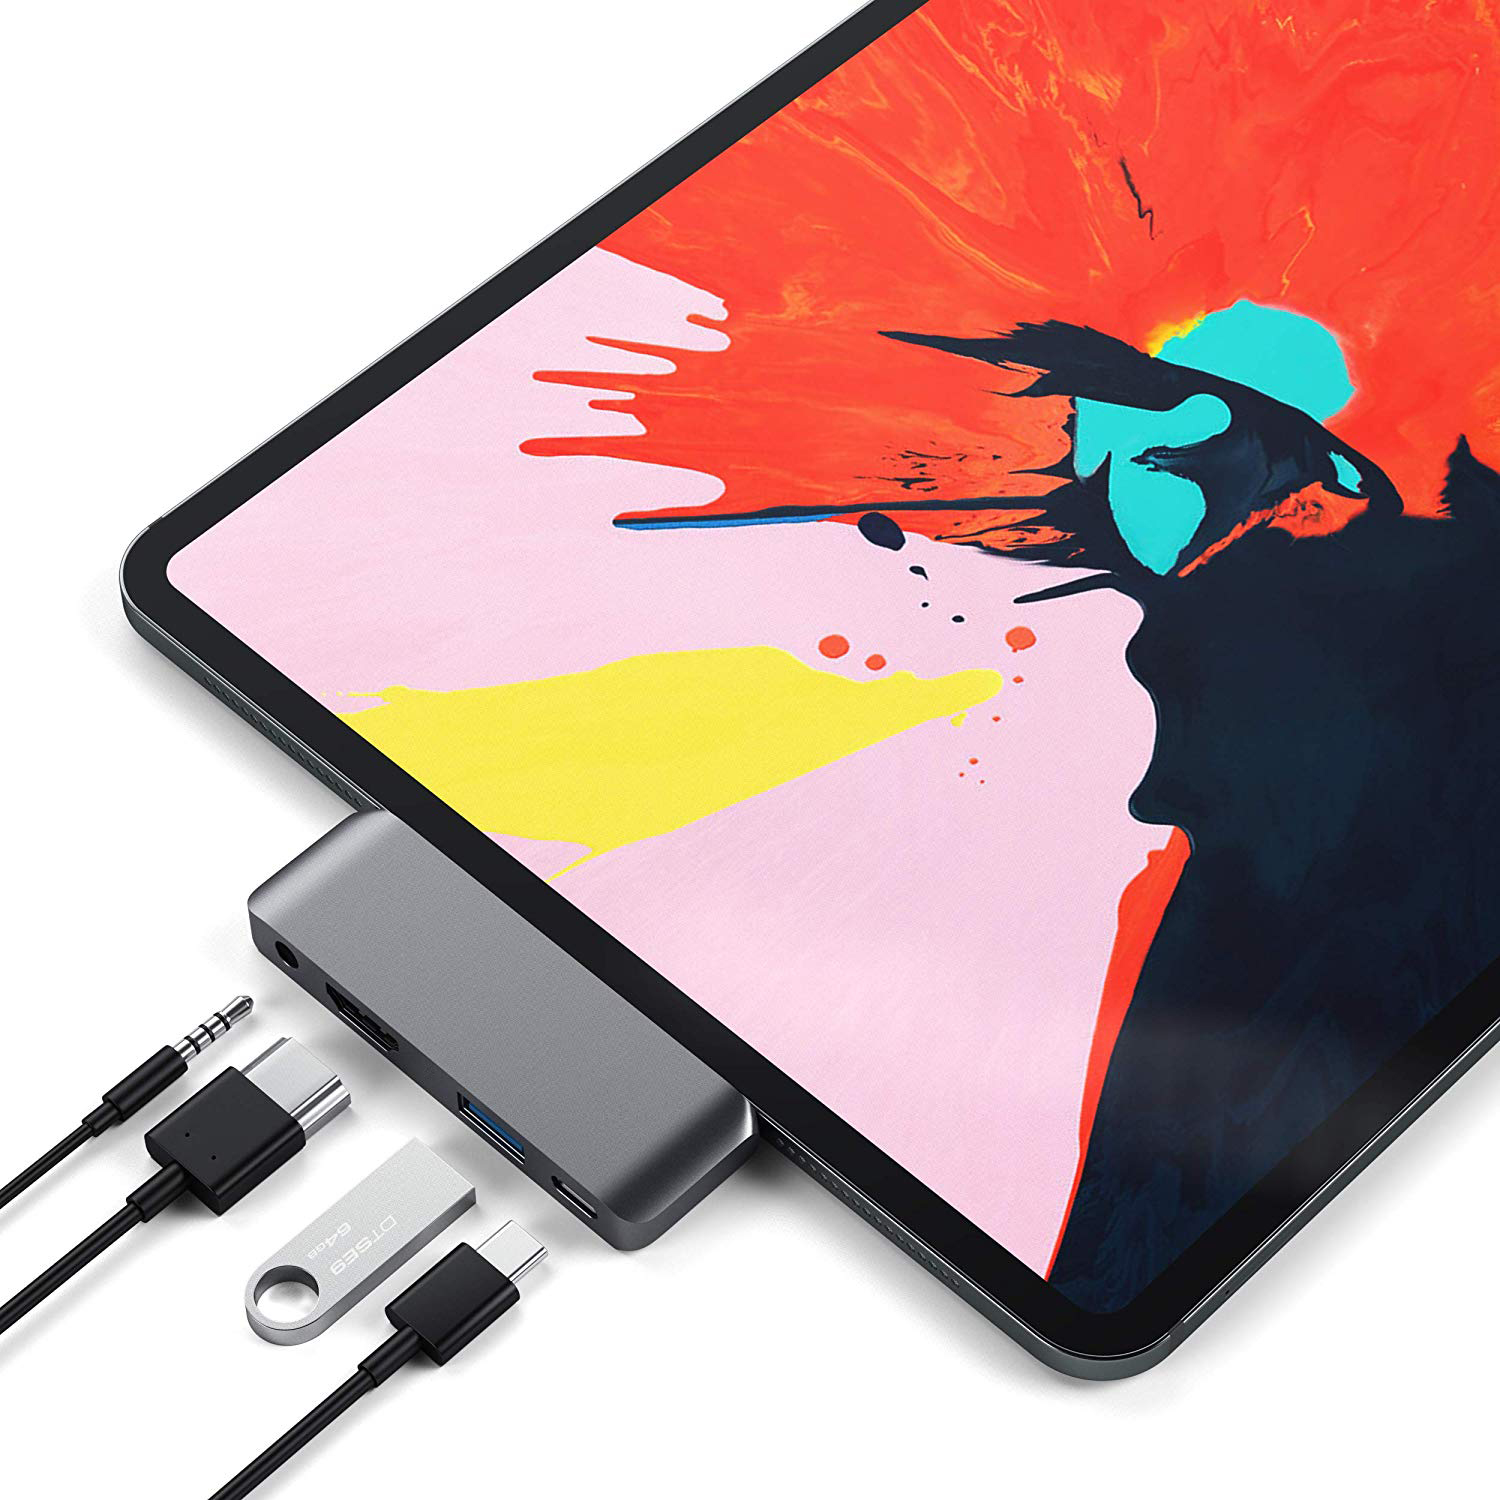 For 2018 iPad Mobile Pro Type C USB Hub Adapter with USB C PD Charging 4K HDMI USB 3.0 & 3.5mm Headphone Jack-in USB Hubs from Computer & Office